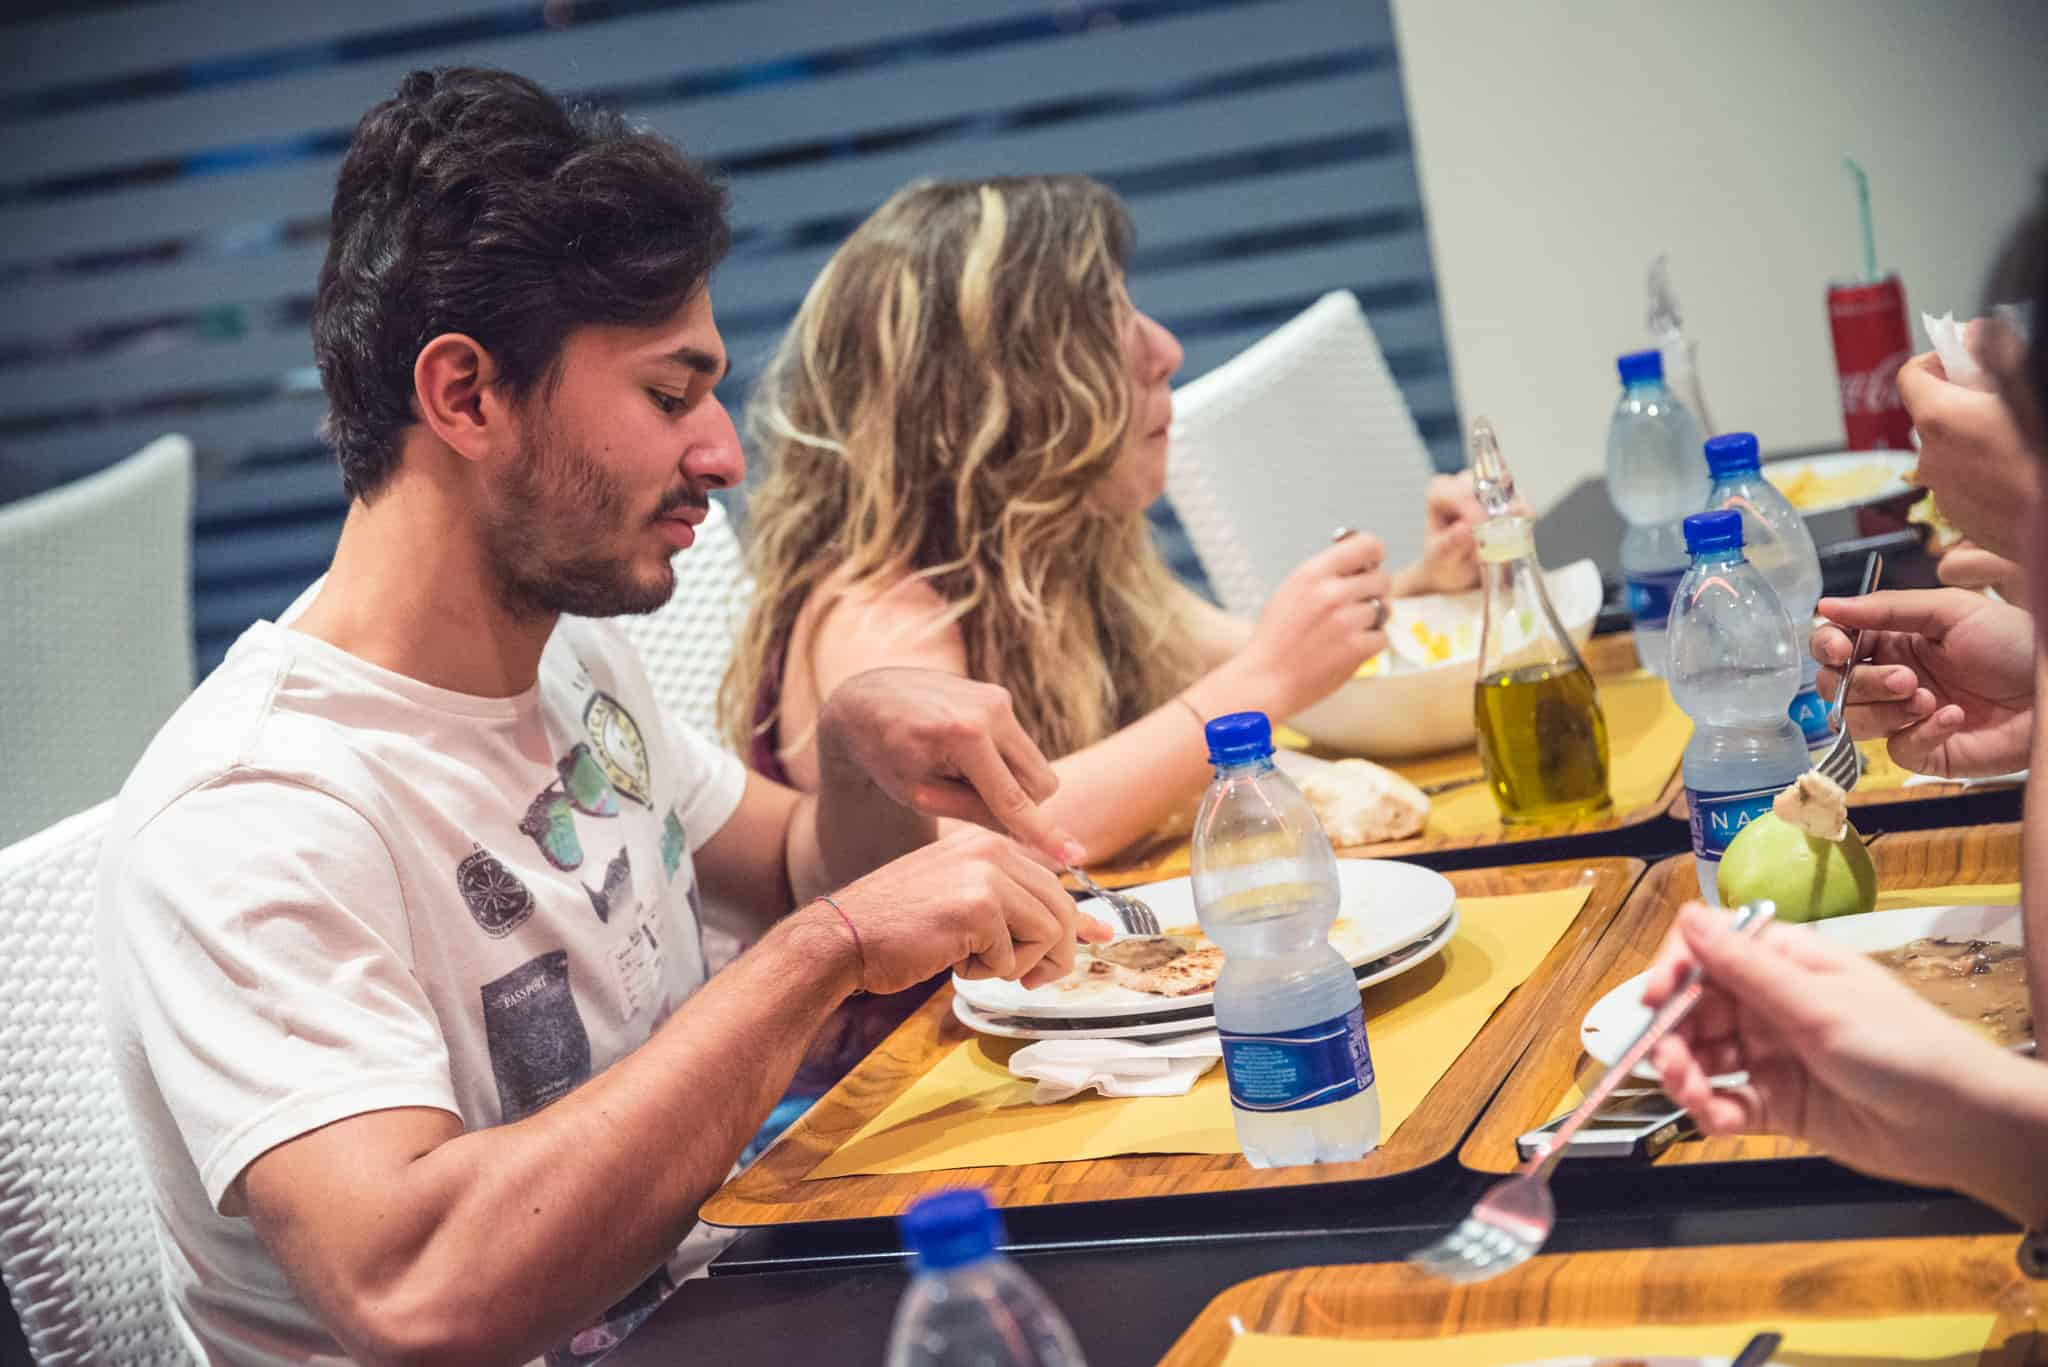 Italian university students: how healthy do they eat?